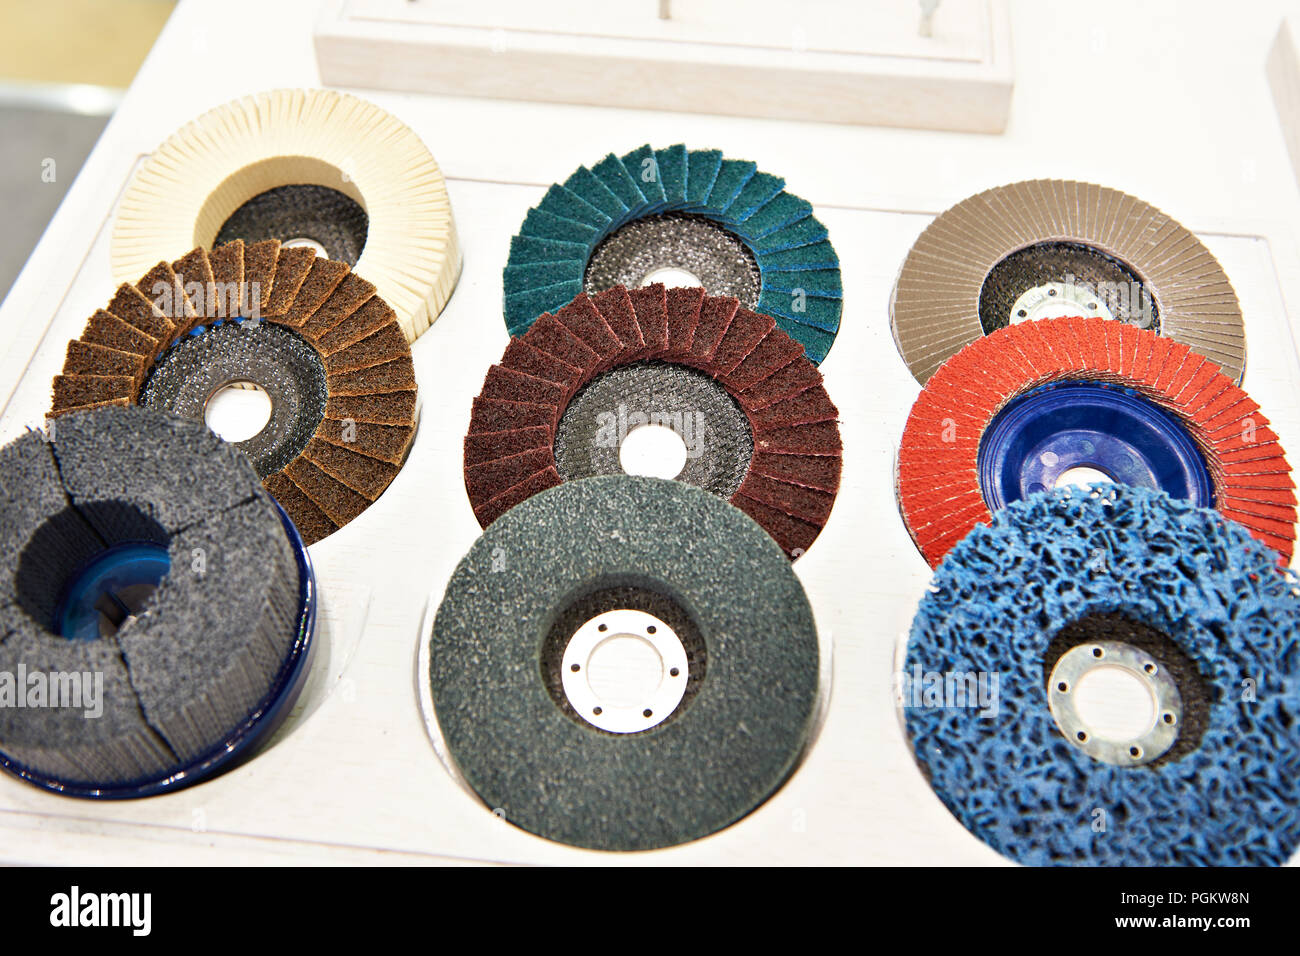 Grinding and polishing disc for angle grinder in store - Stock Image